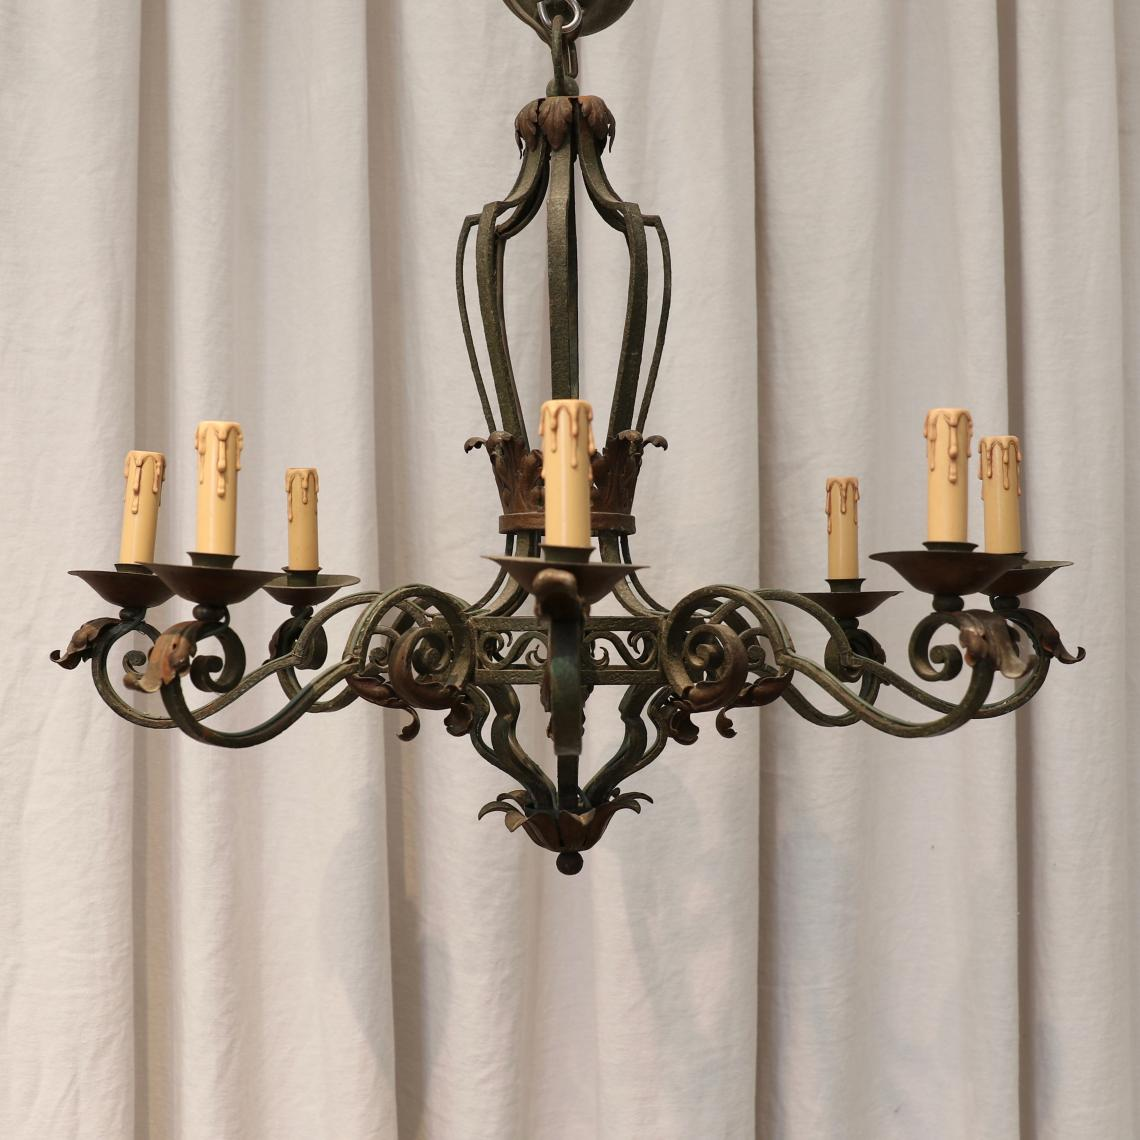 112-45 - Rustic Eight Light Chandelier